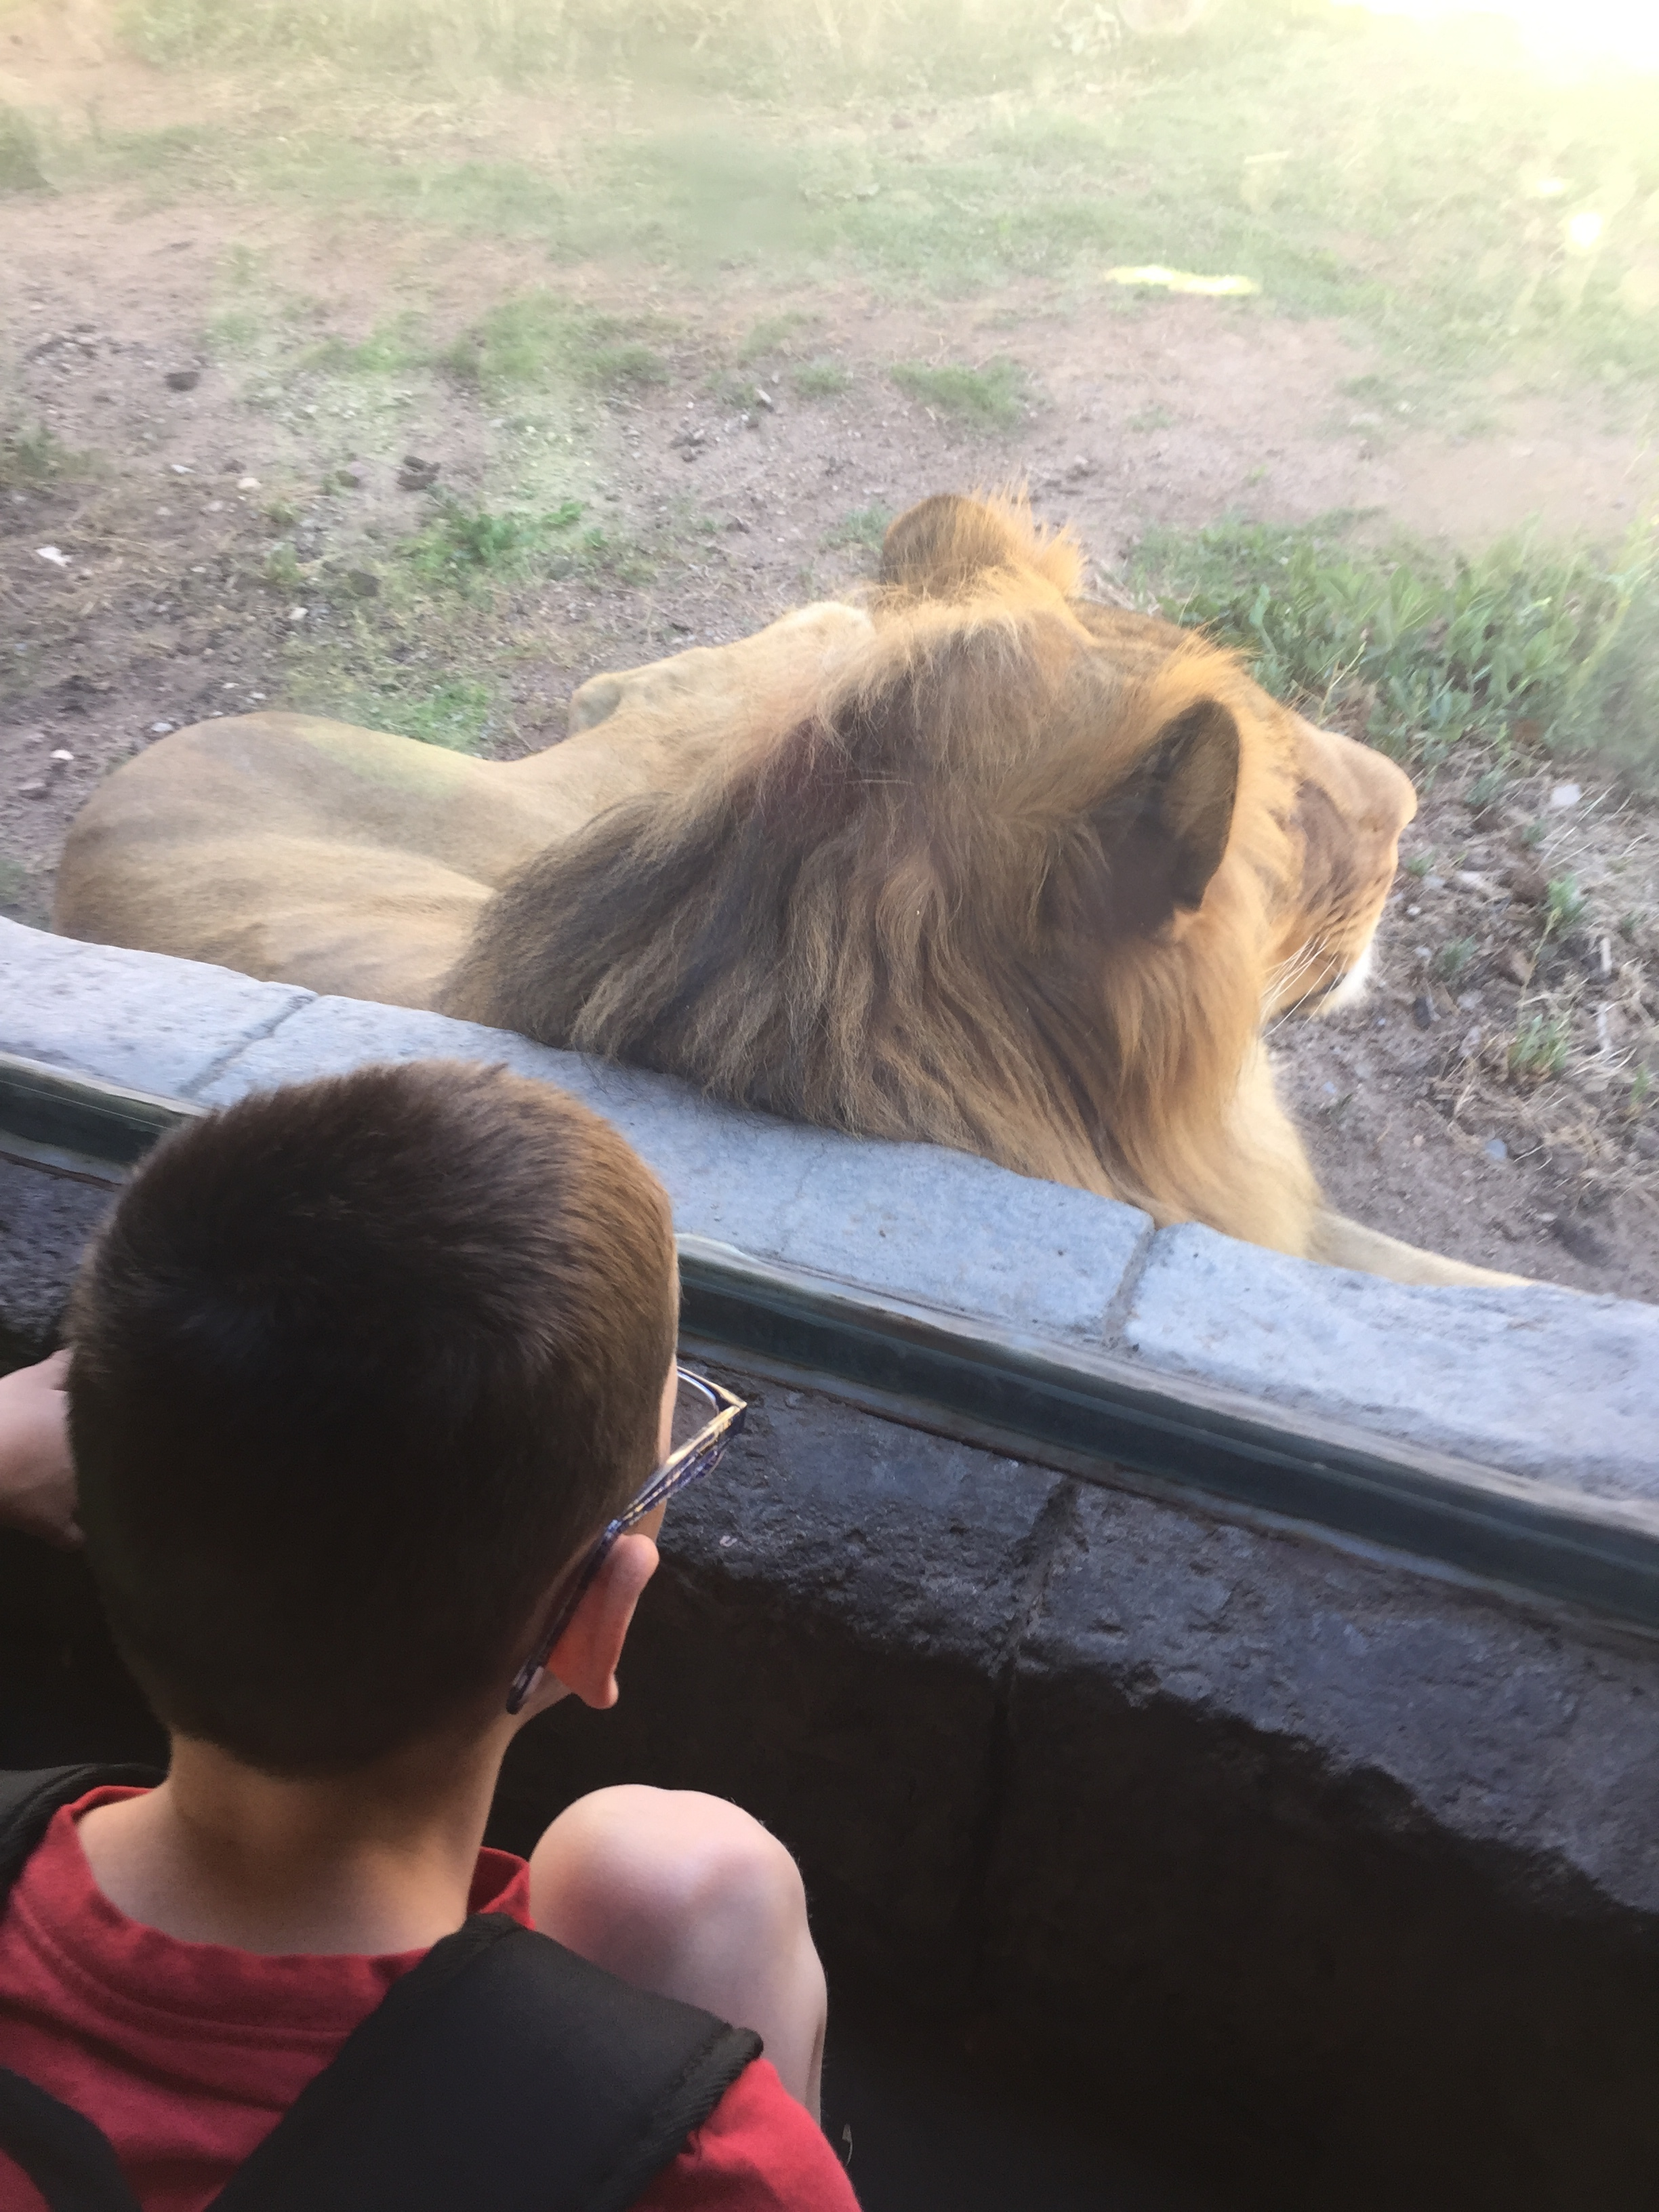 LION! Up close and personal!